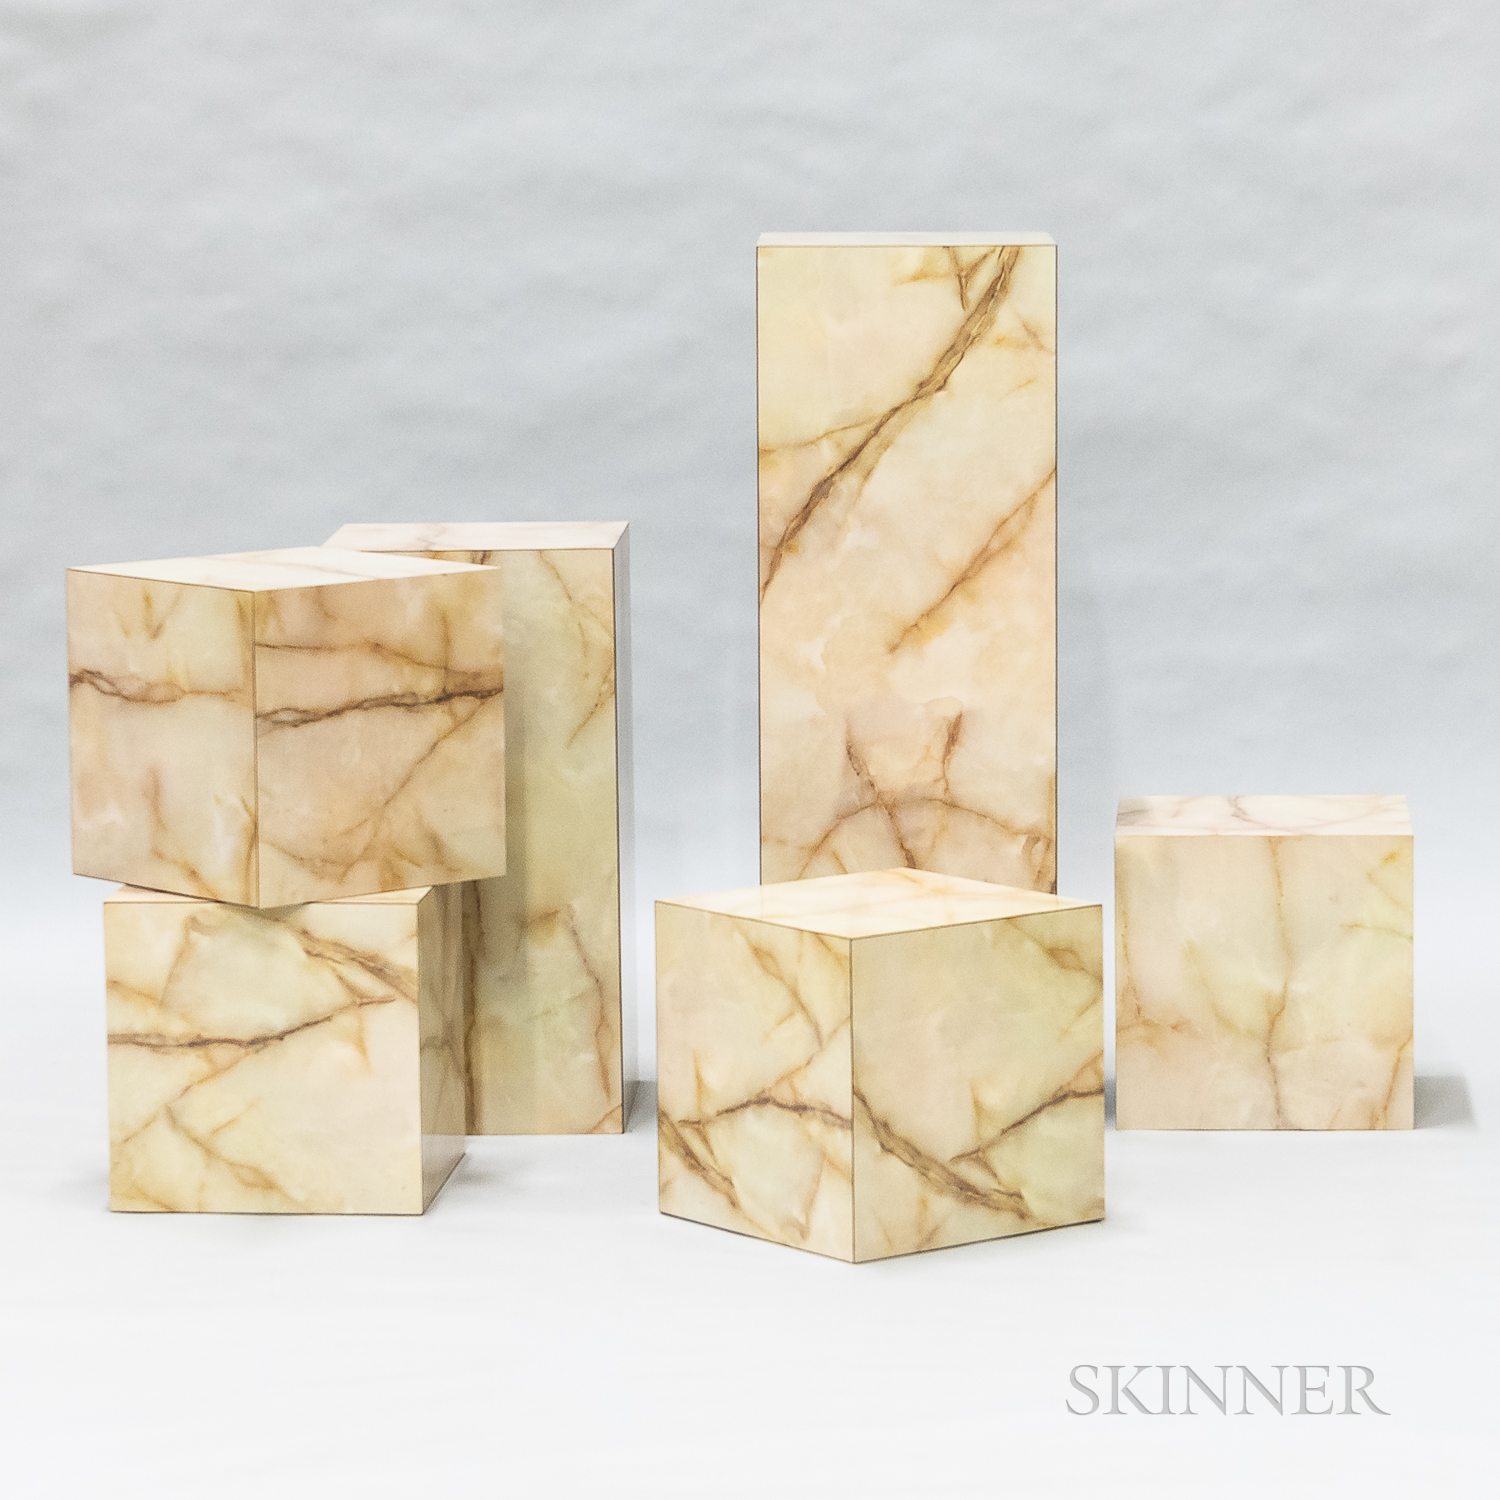 Six Marble-laminated Plinths